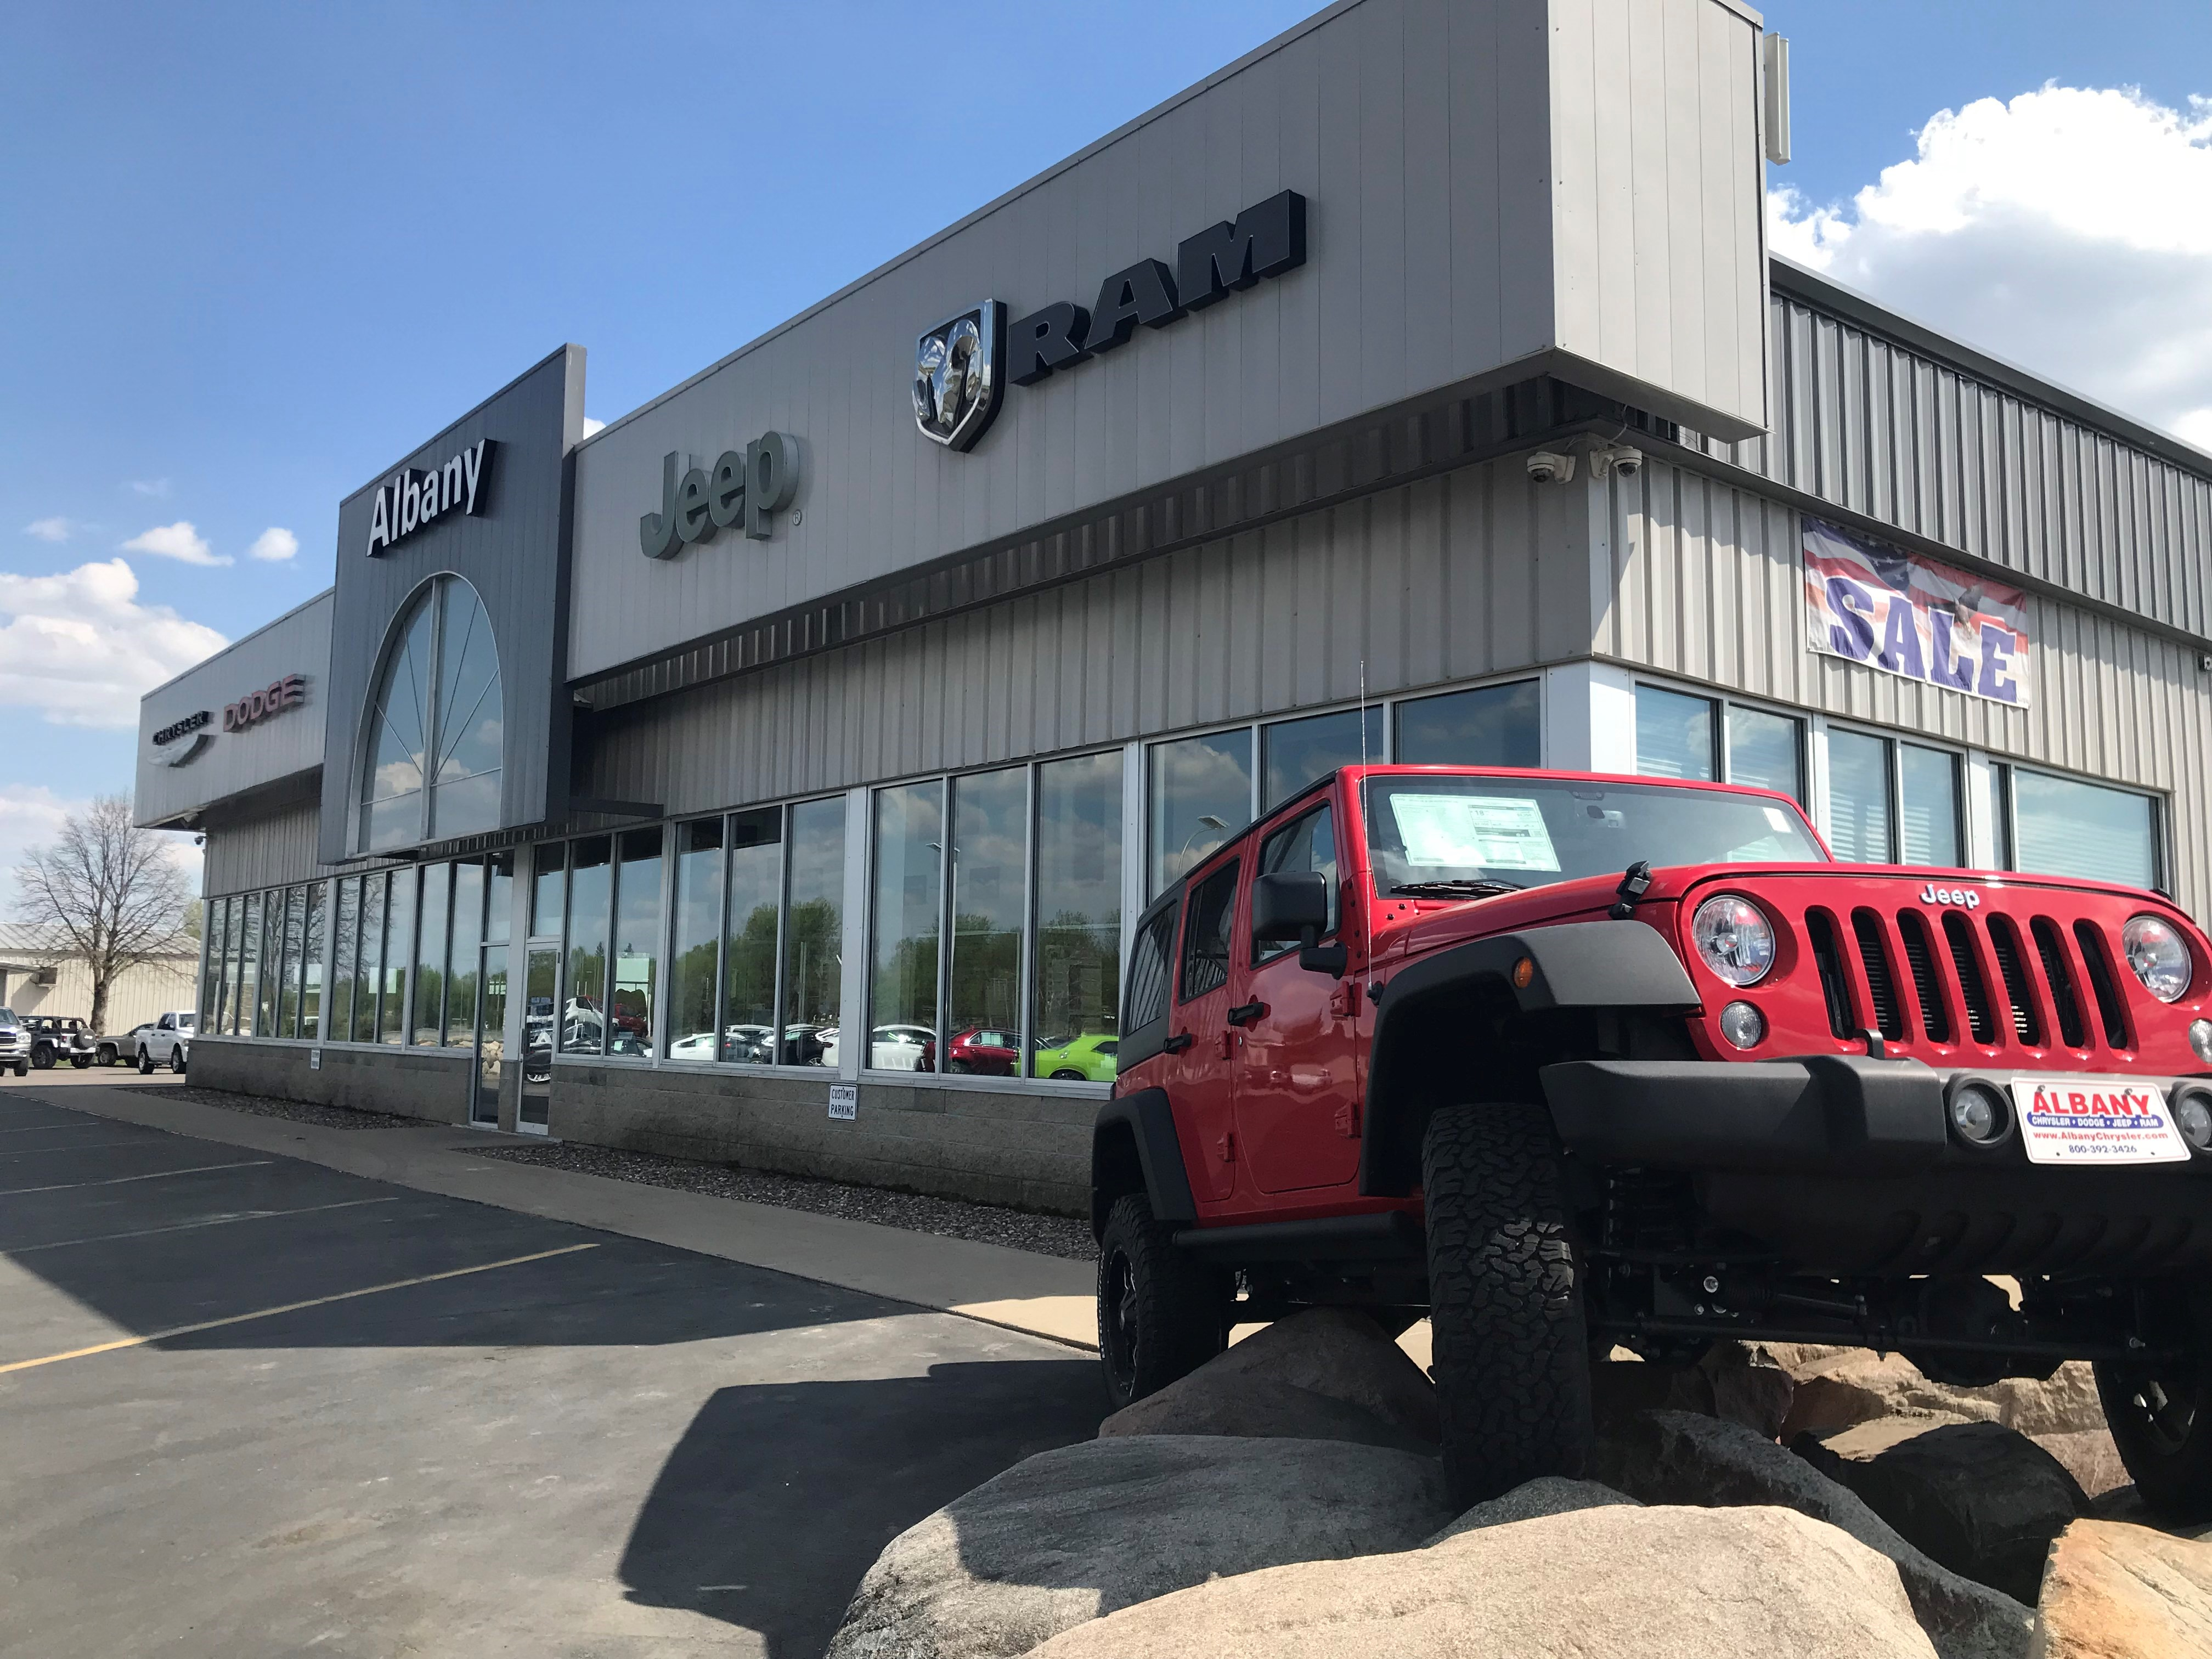 New And Used Chrysler Dodge Jeep Ram Cars For Sale In Albany